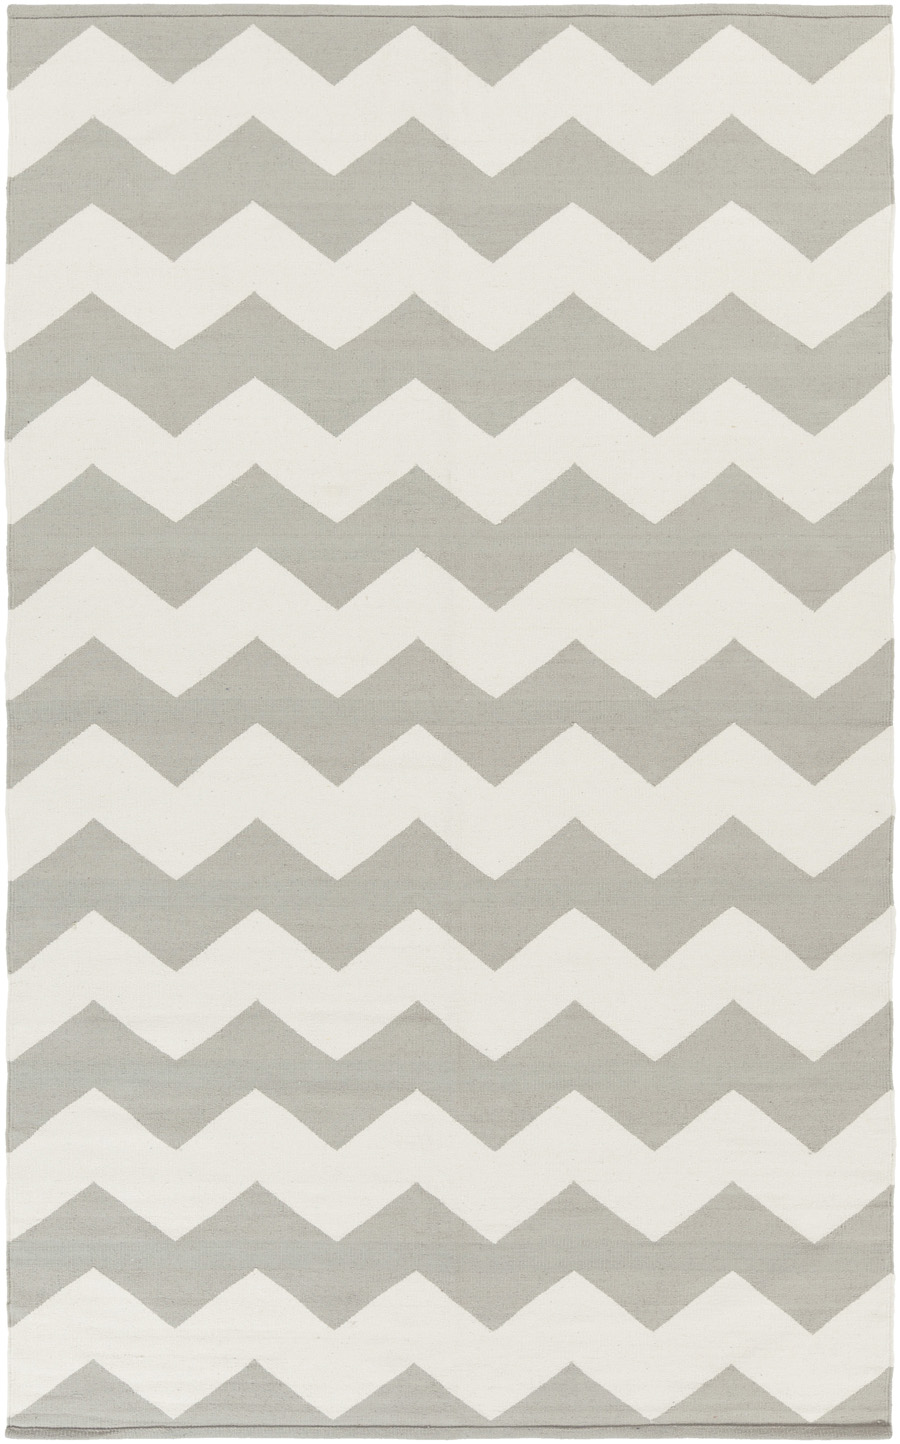 Artistic Weavers Vogue Collins AWLT3019 Grey/White Area Rug